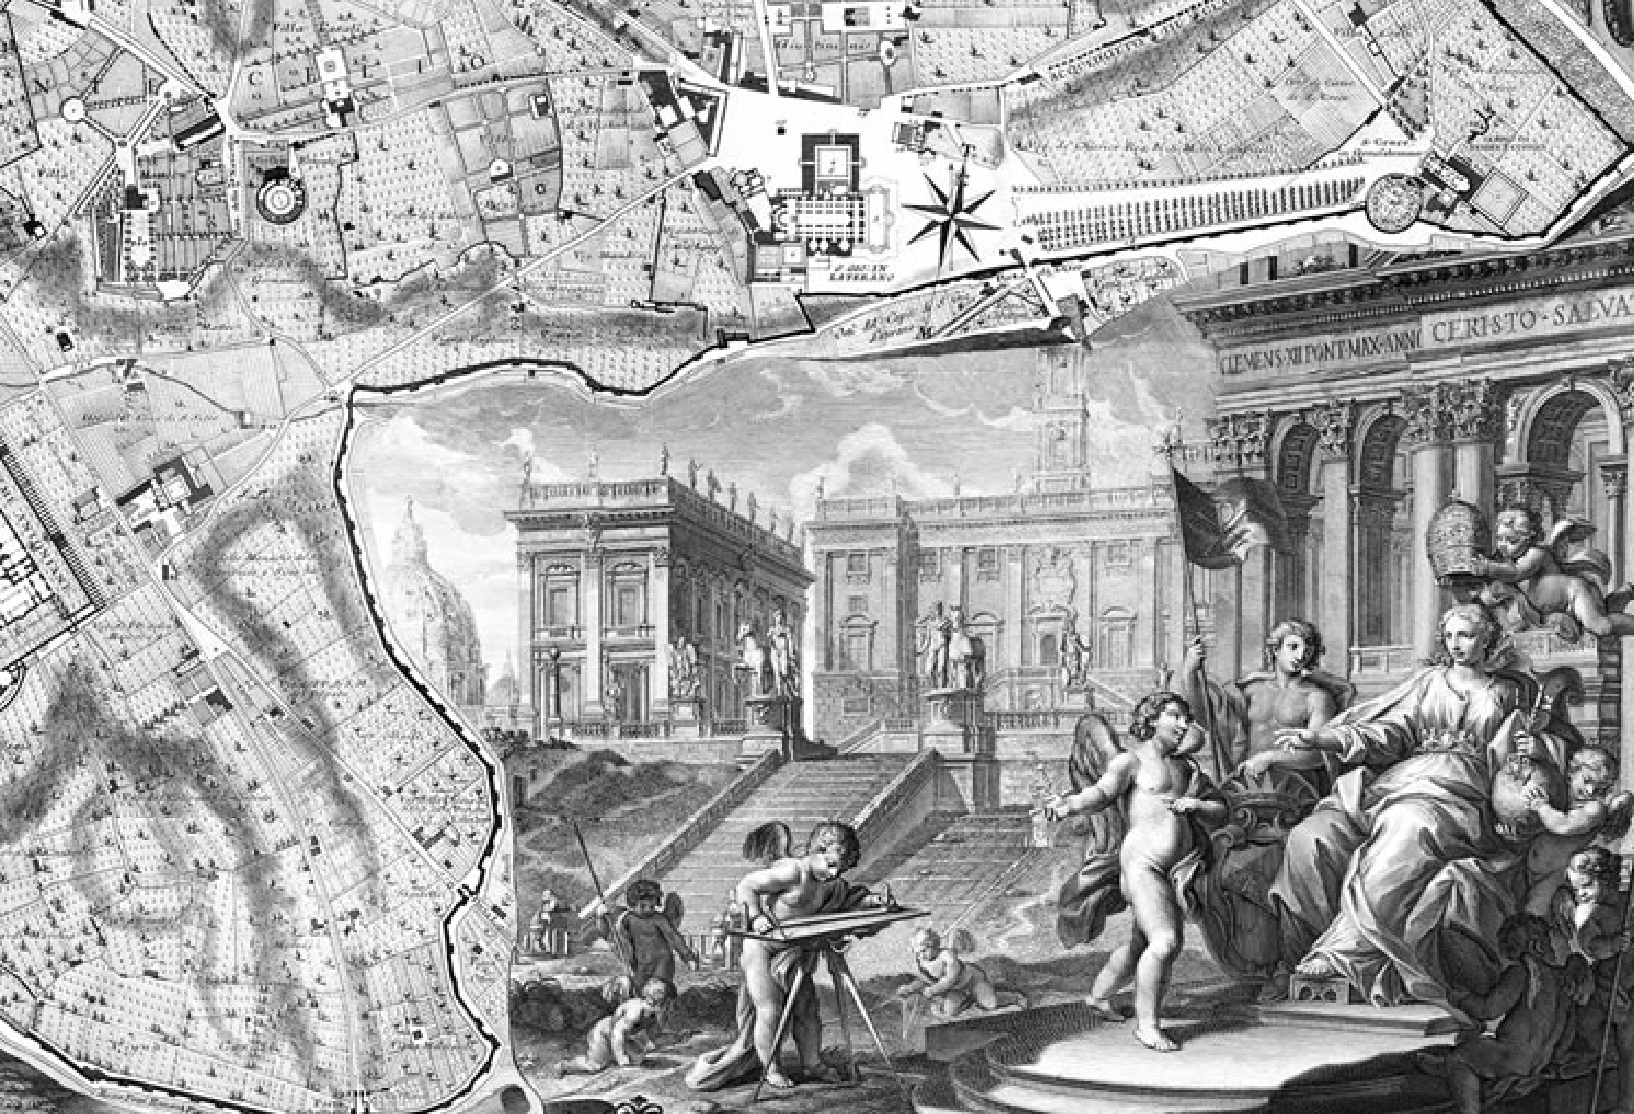 Capitoline and drafting tool